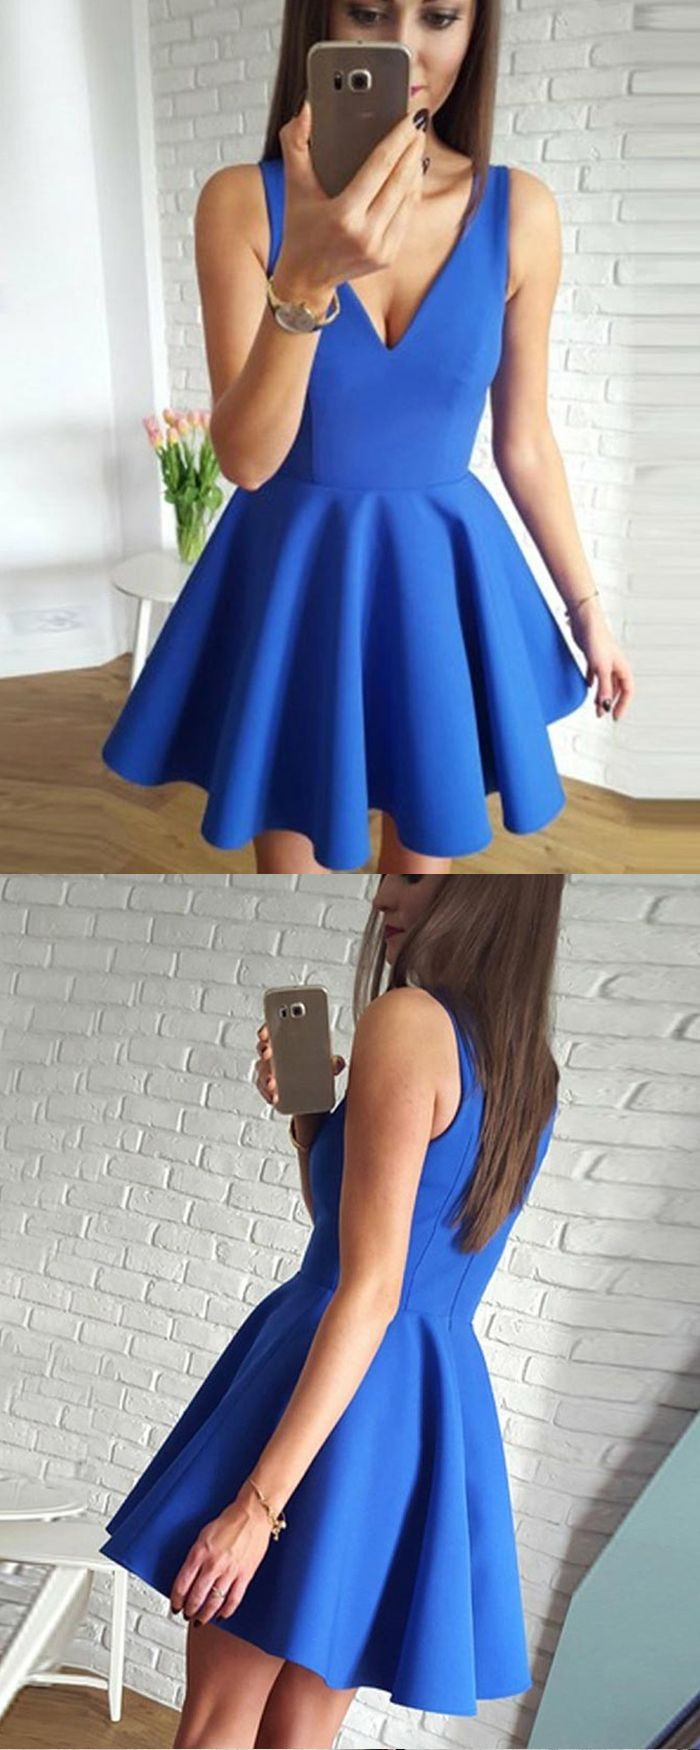 Vneck blue simple pleated satin homecoming party dress hd